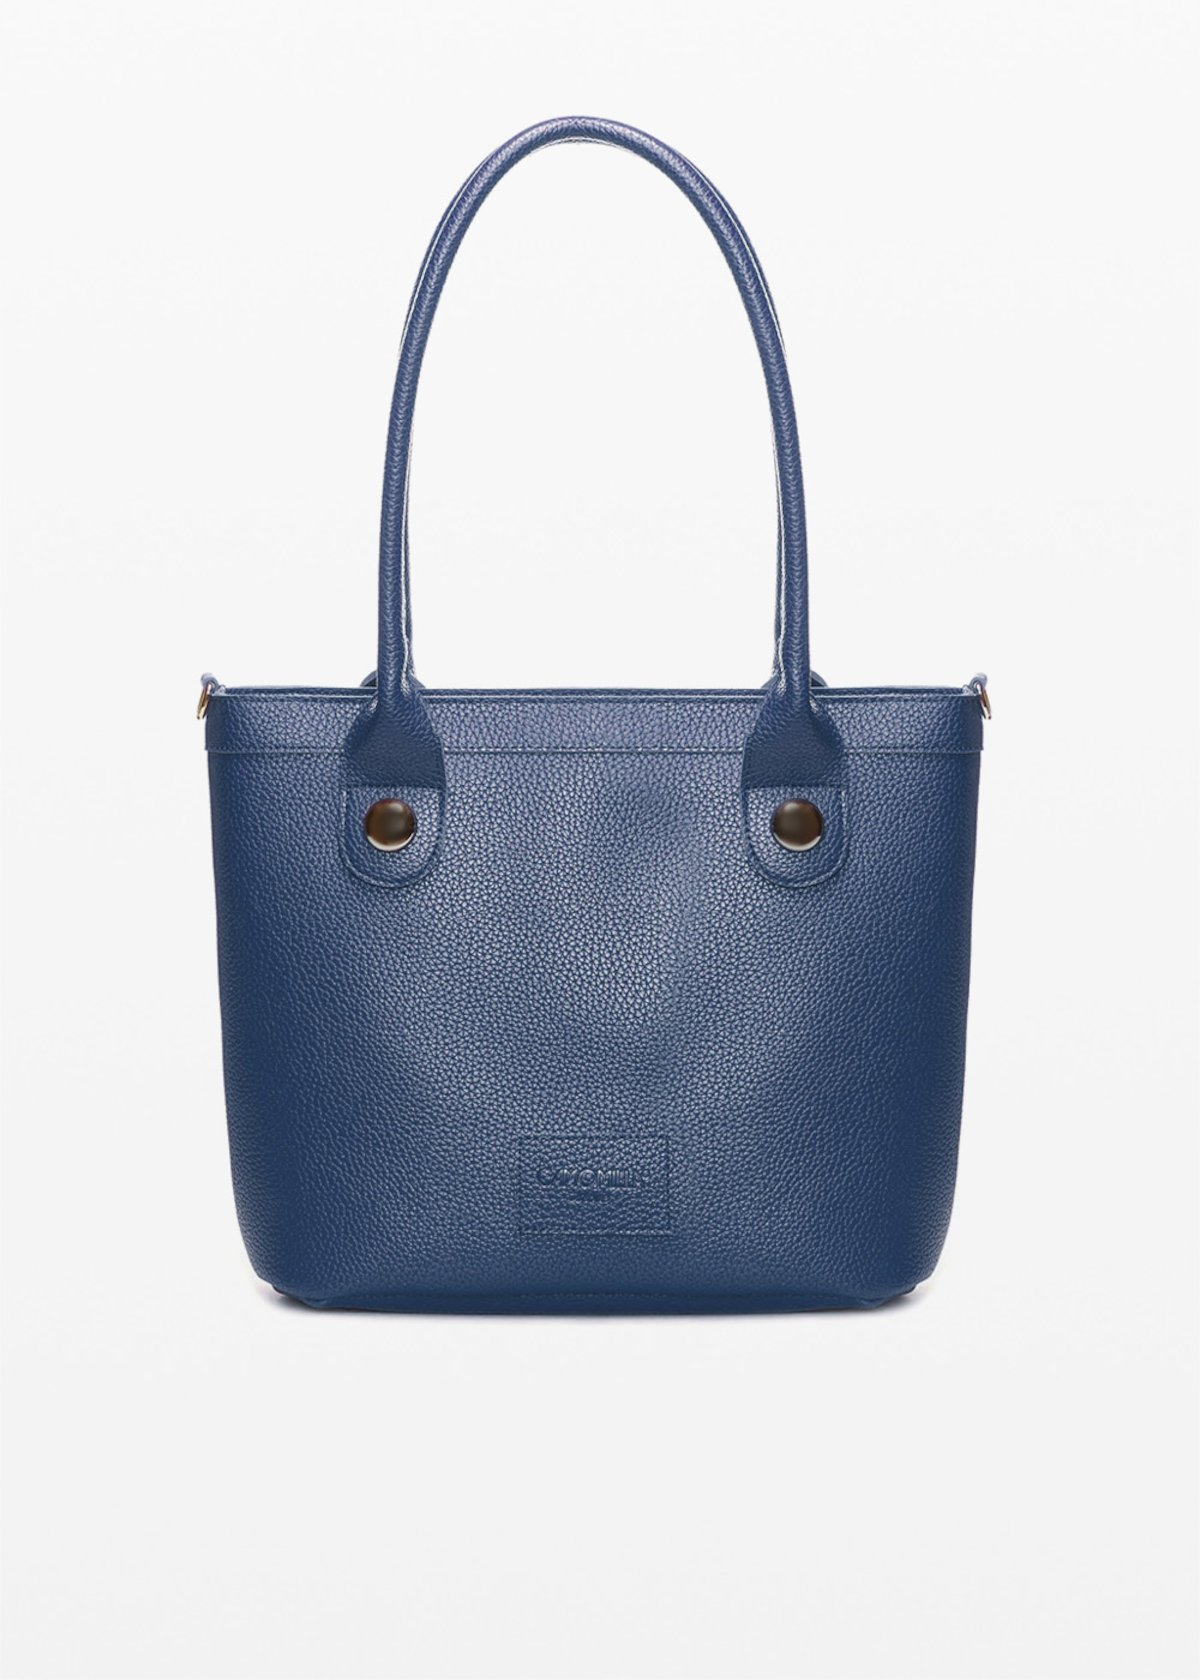 Borsa Baggy in ecopelle con dettagli metal - Medium Blue - Donna - Immagine categoria